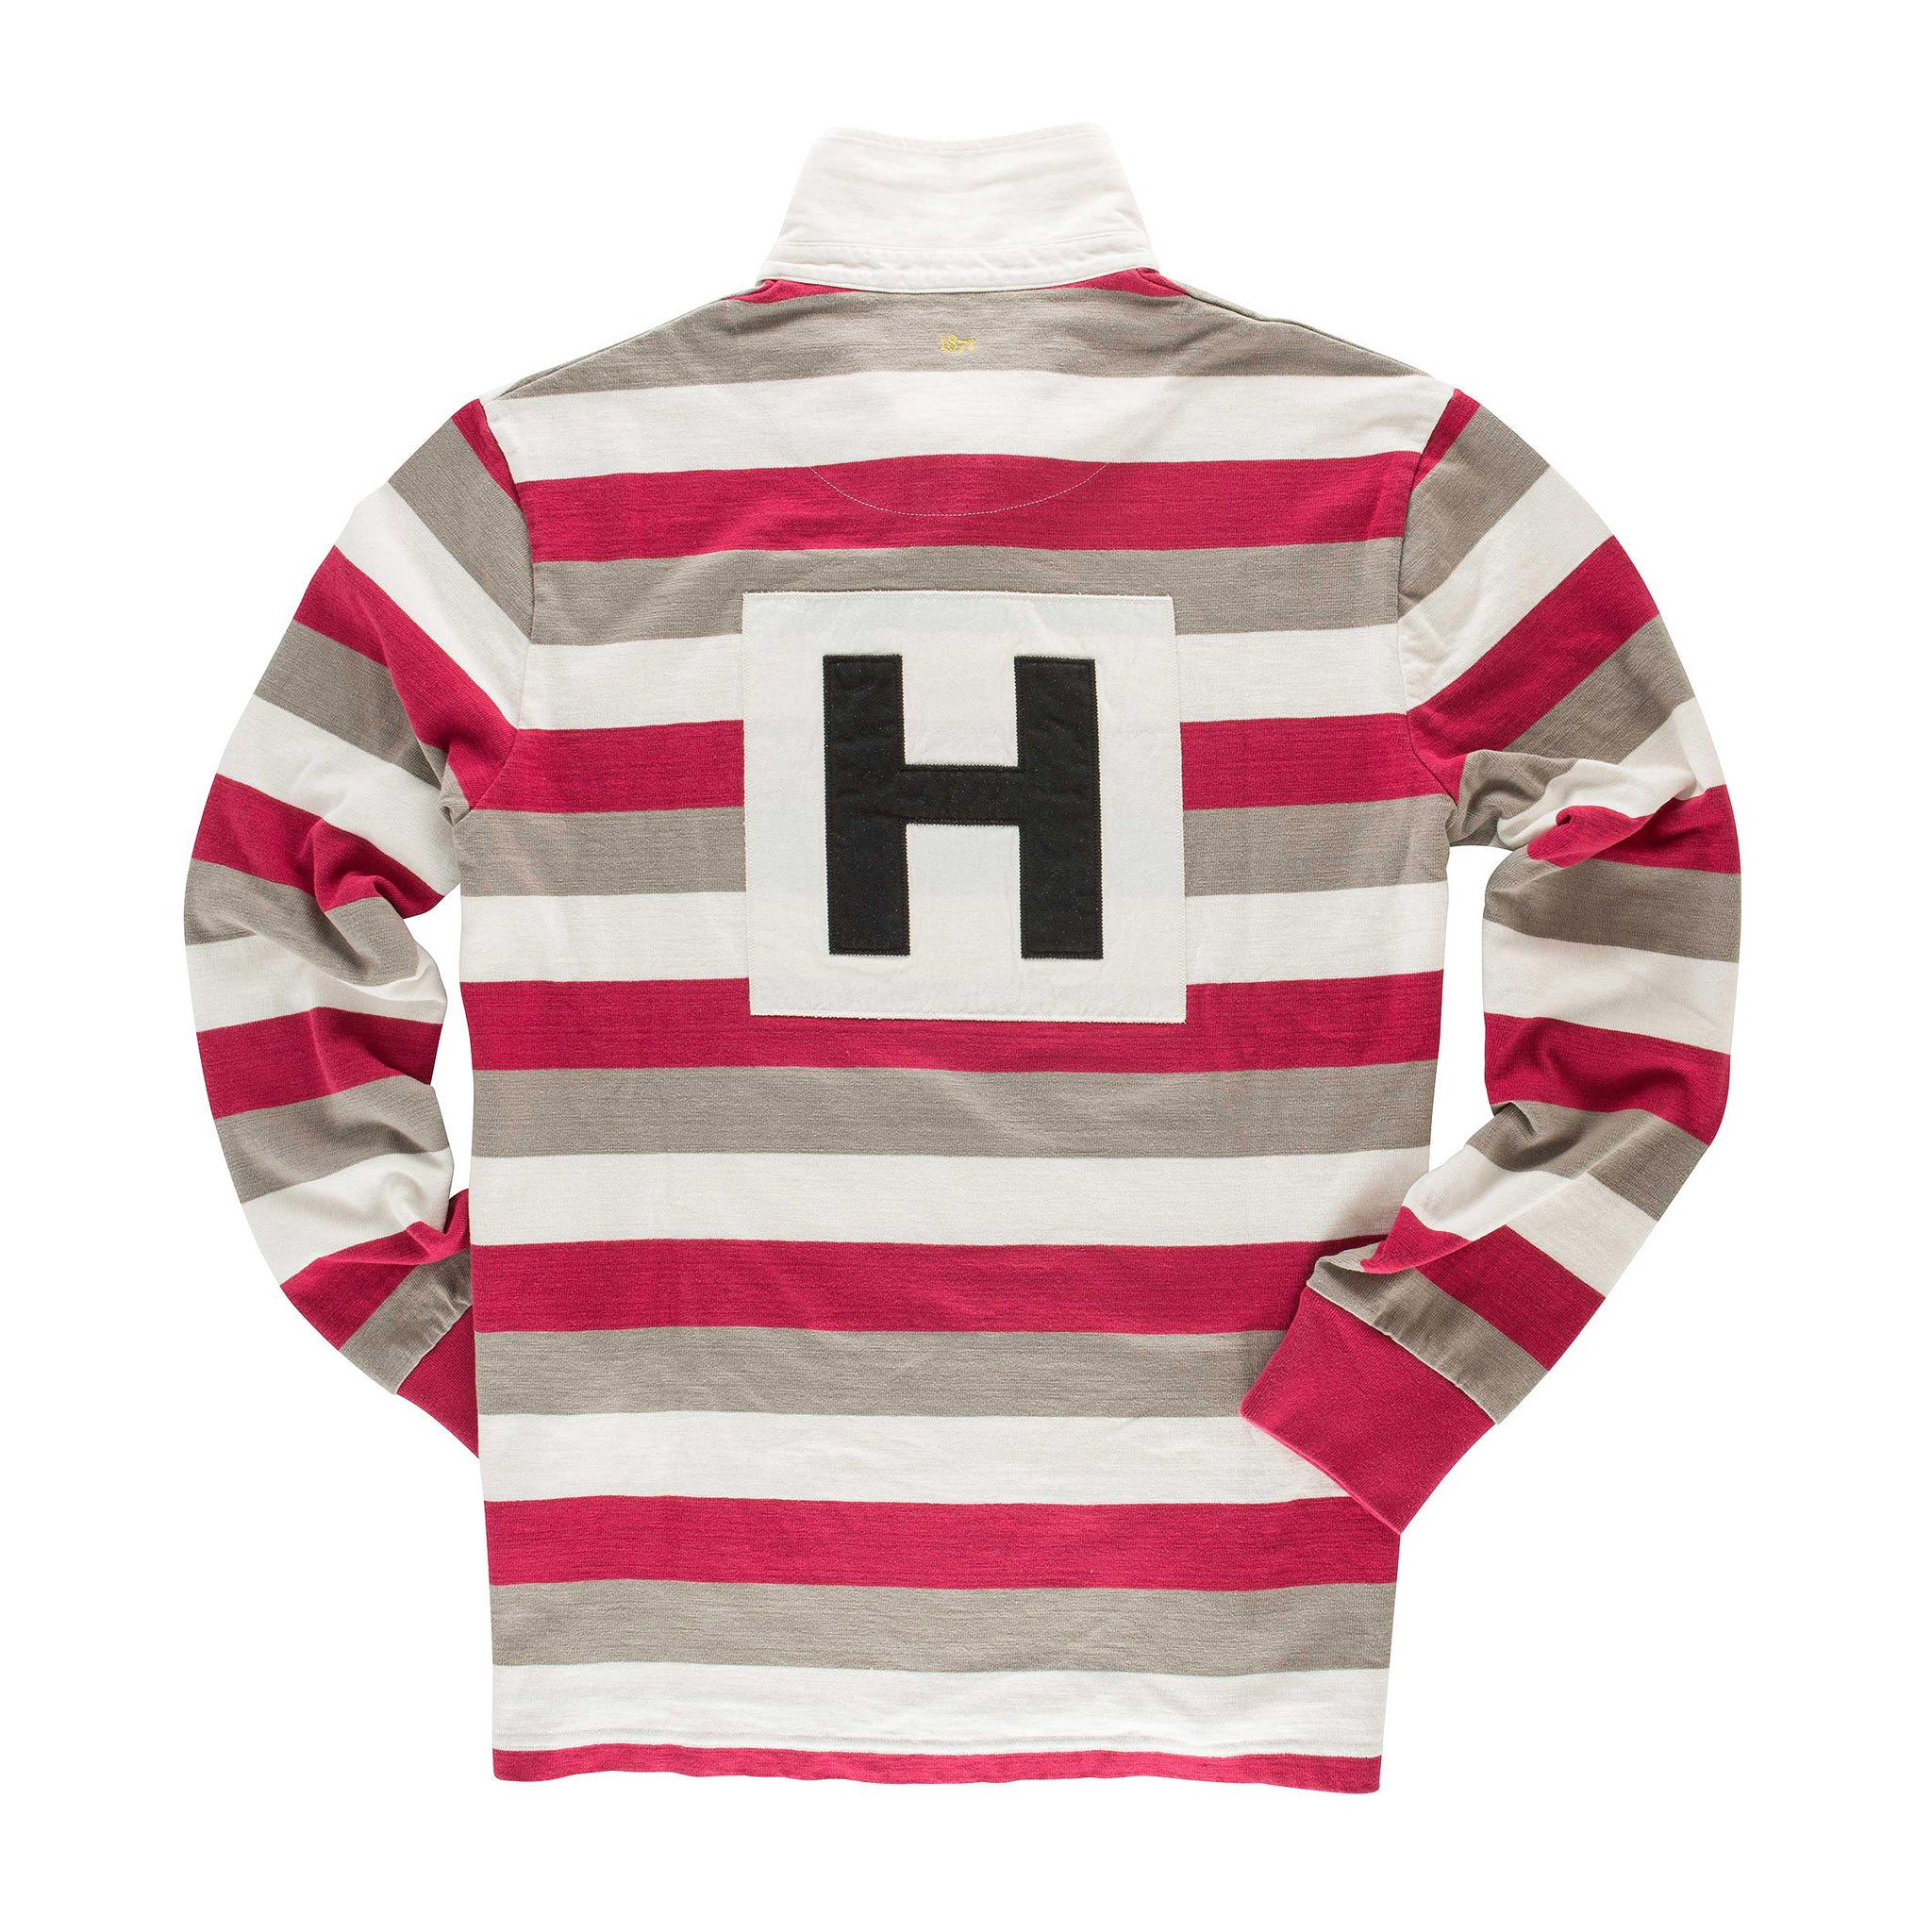 Black & Blue Clapham Rovers Rugby Shirt for Men in Cerise/ French Grey/ White